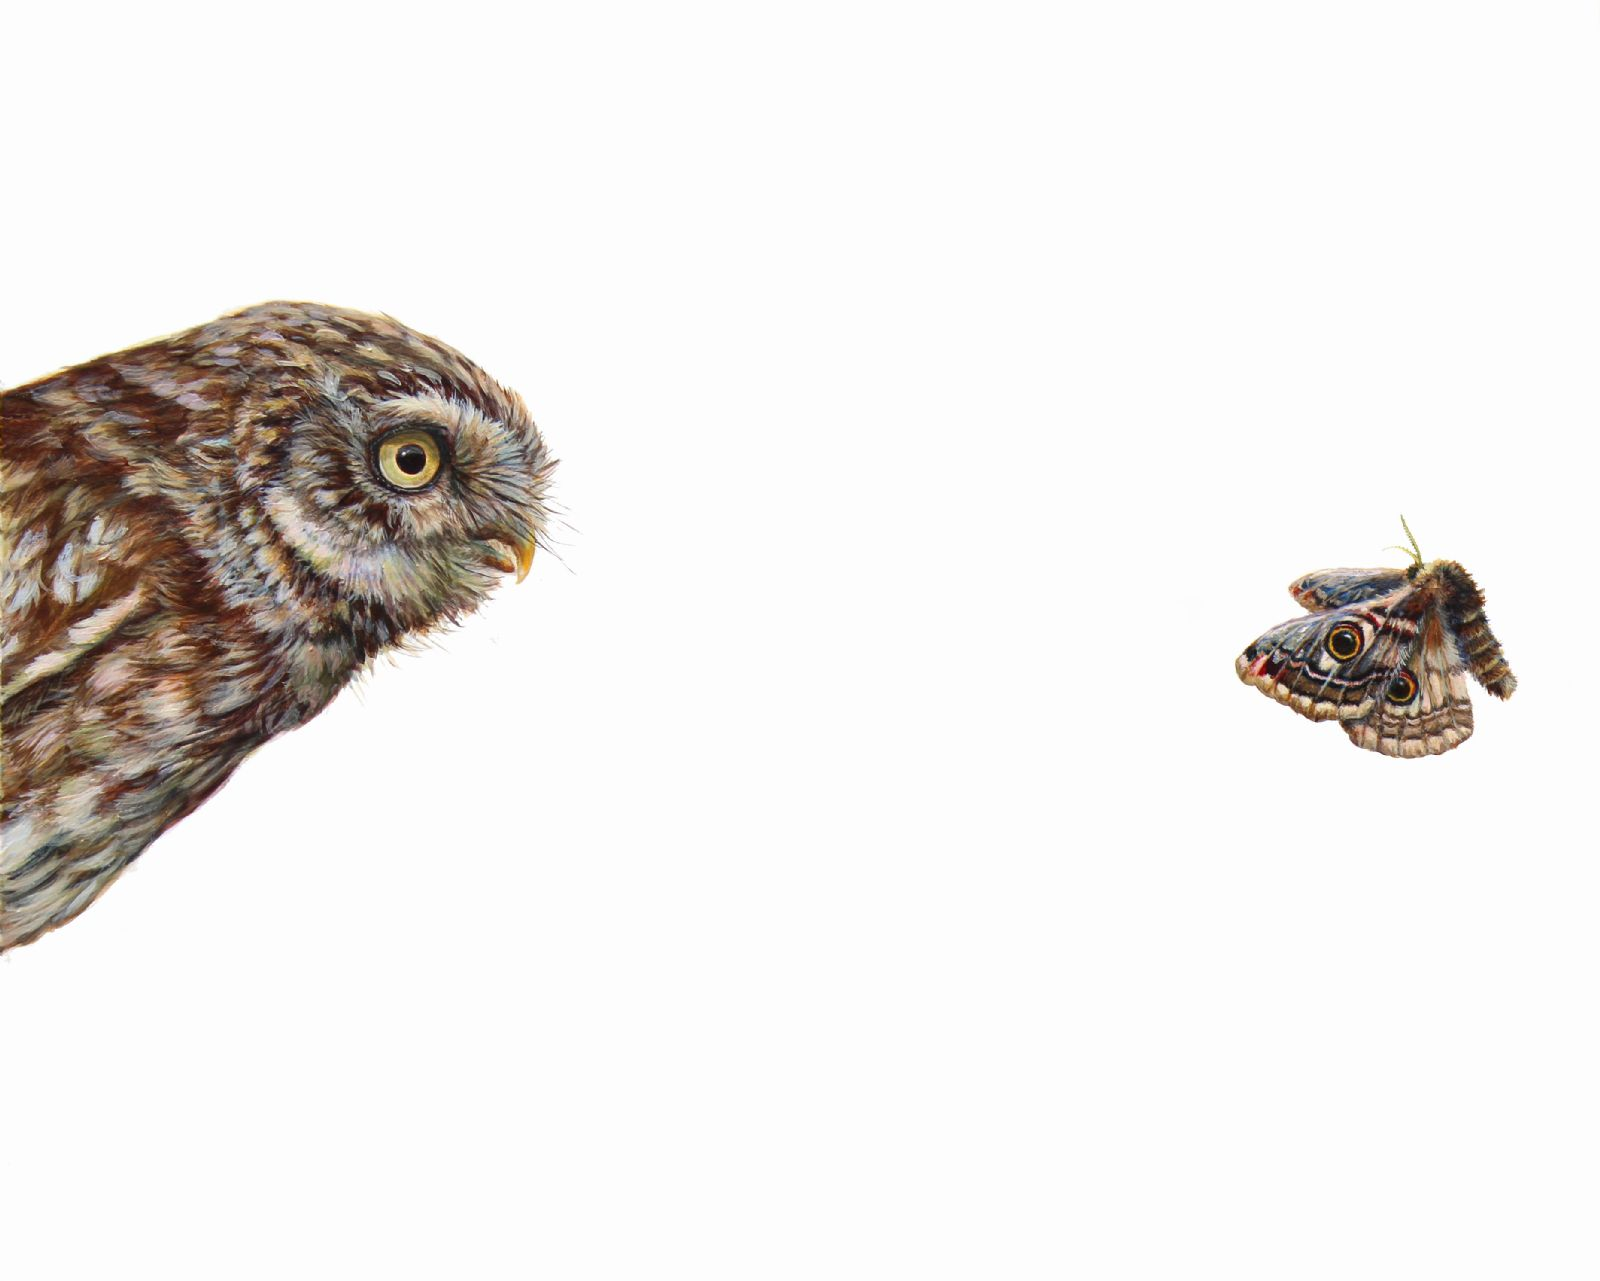 Top Predator : Owl & Moth by Hazel Mountford